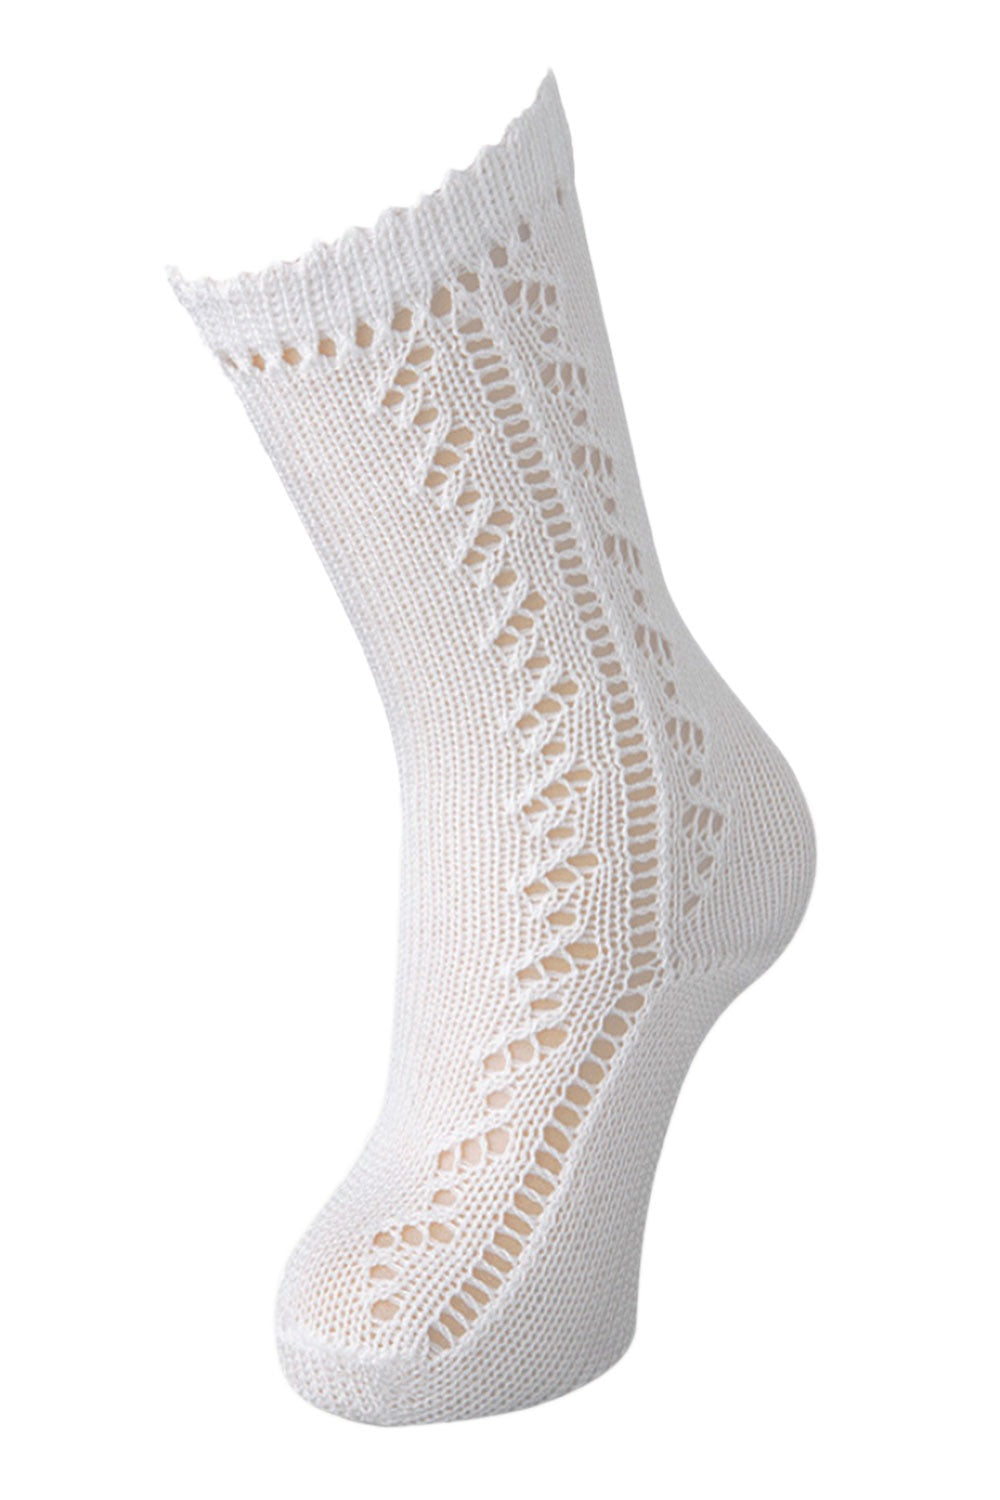 WHITE OPEN WORK KNEE HIGH